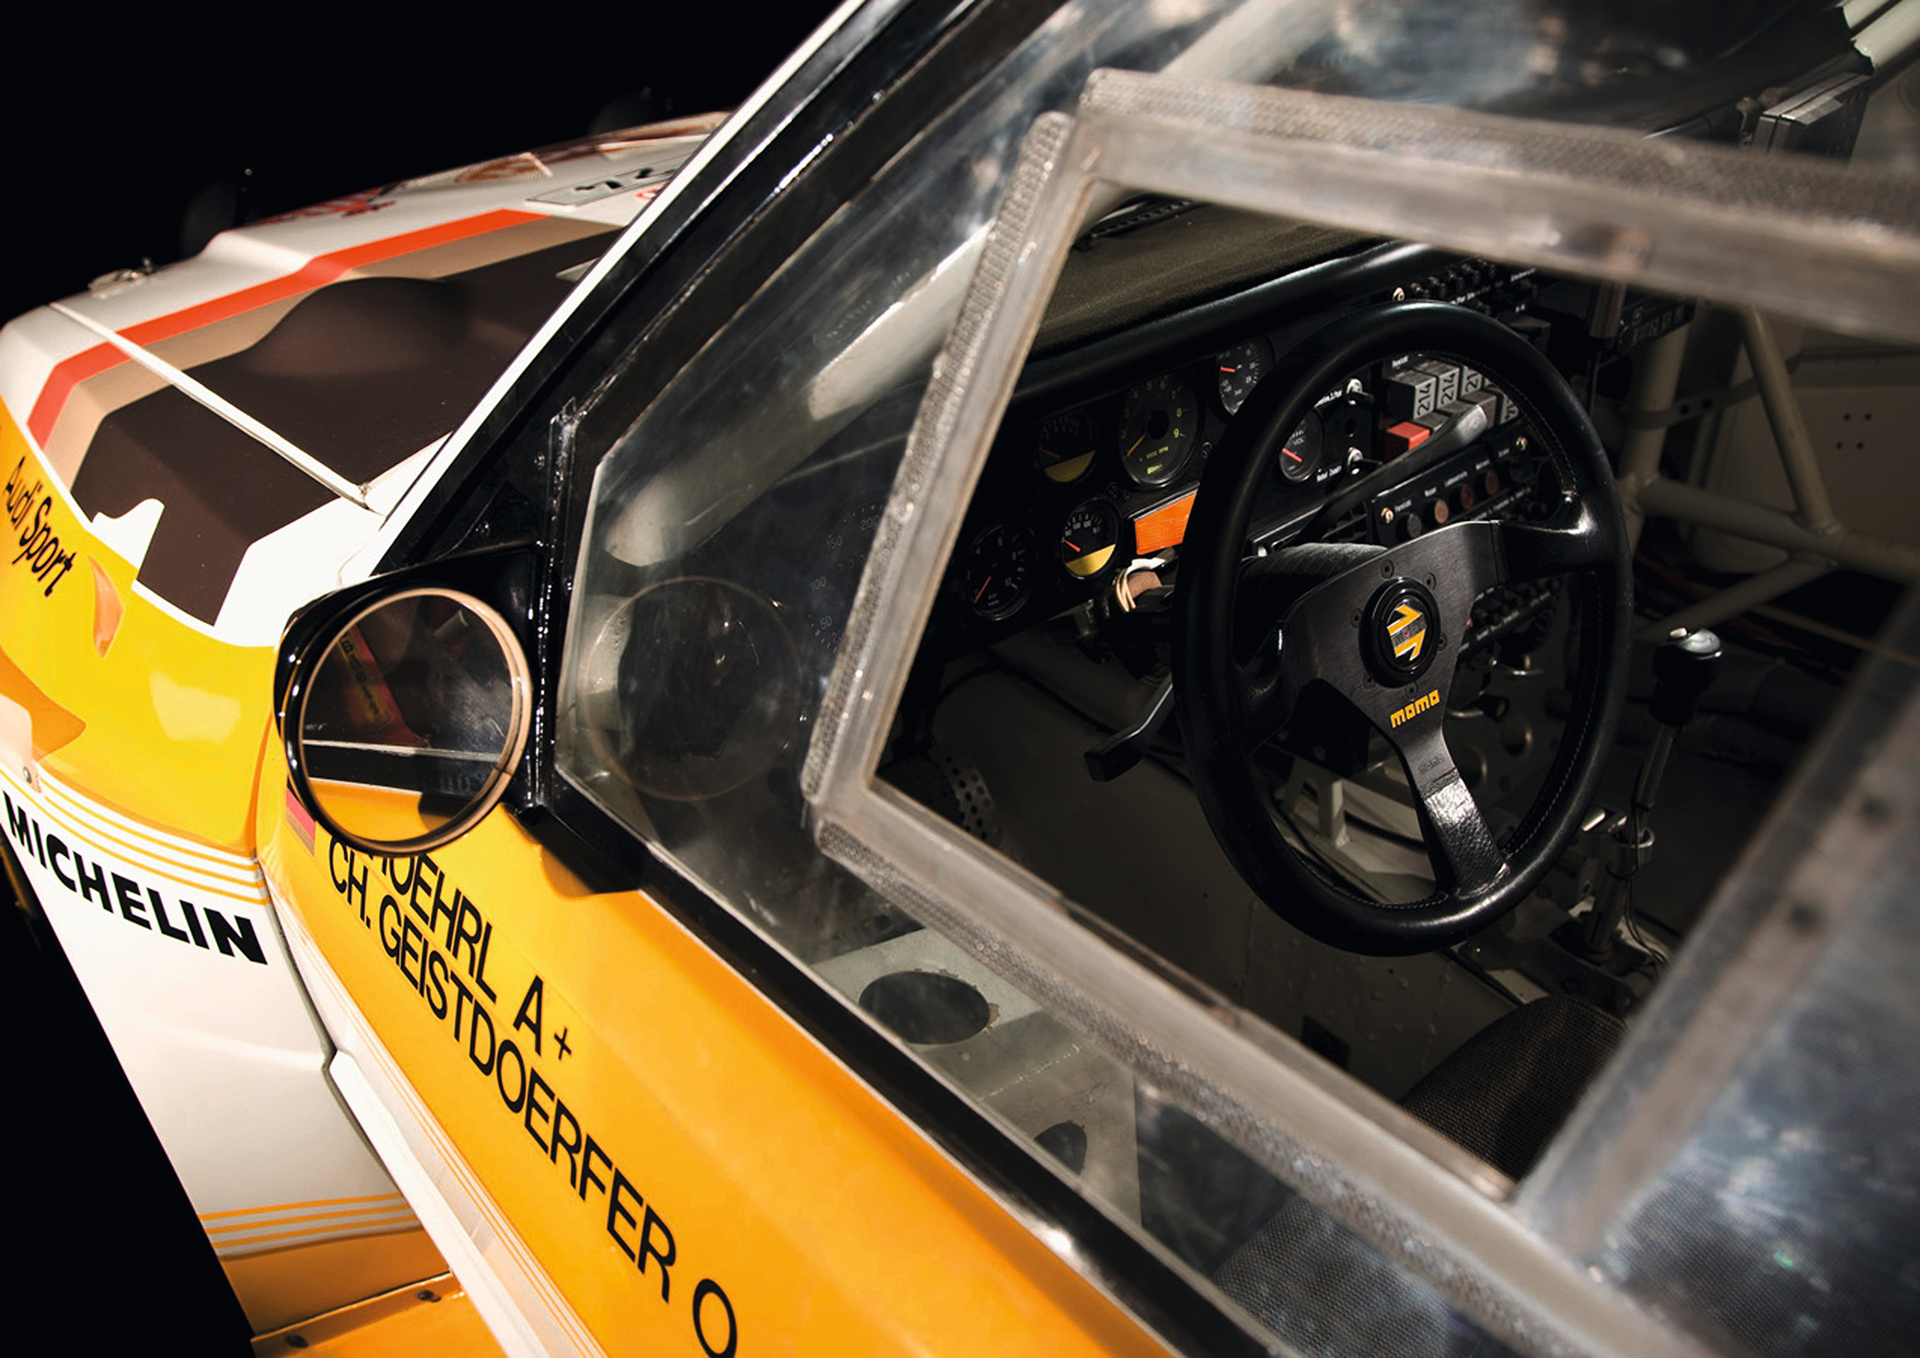 Audi Sport quattro S1 - FIA Group B Rally Car - 1985 - 1986 - side view interior / vitre vue intérieur